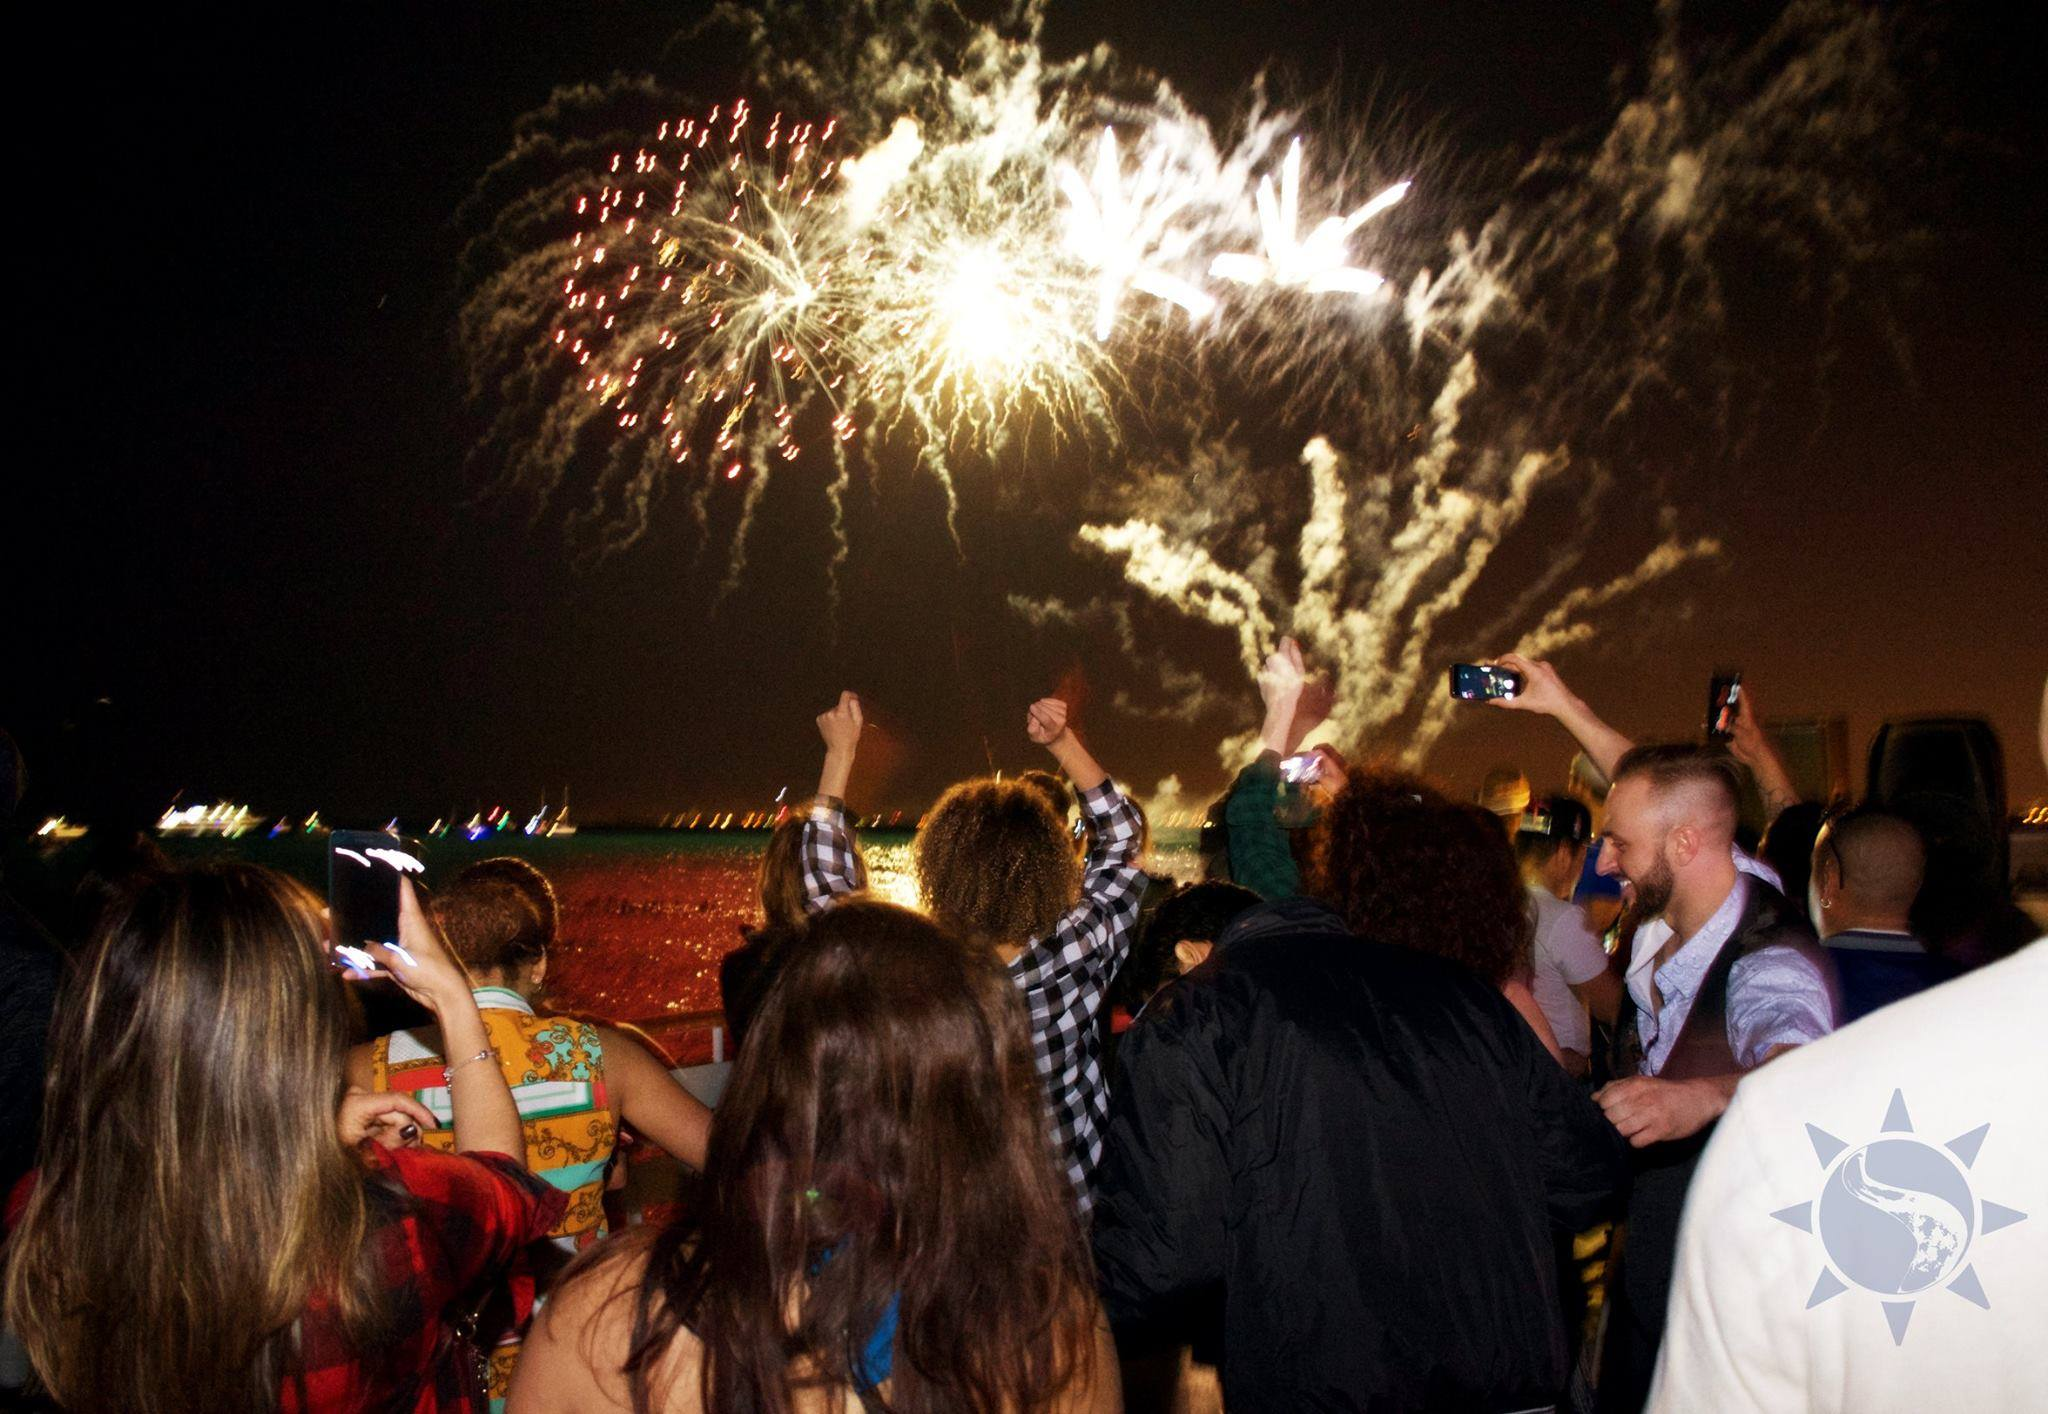 Saturday Night Halloween Costume Party with Fireworks (Booze ...